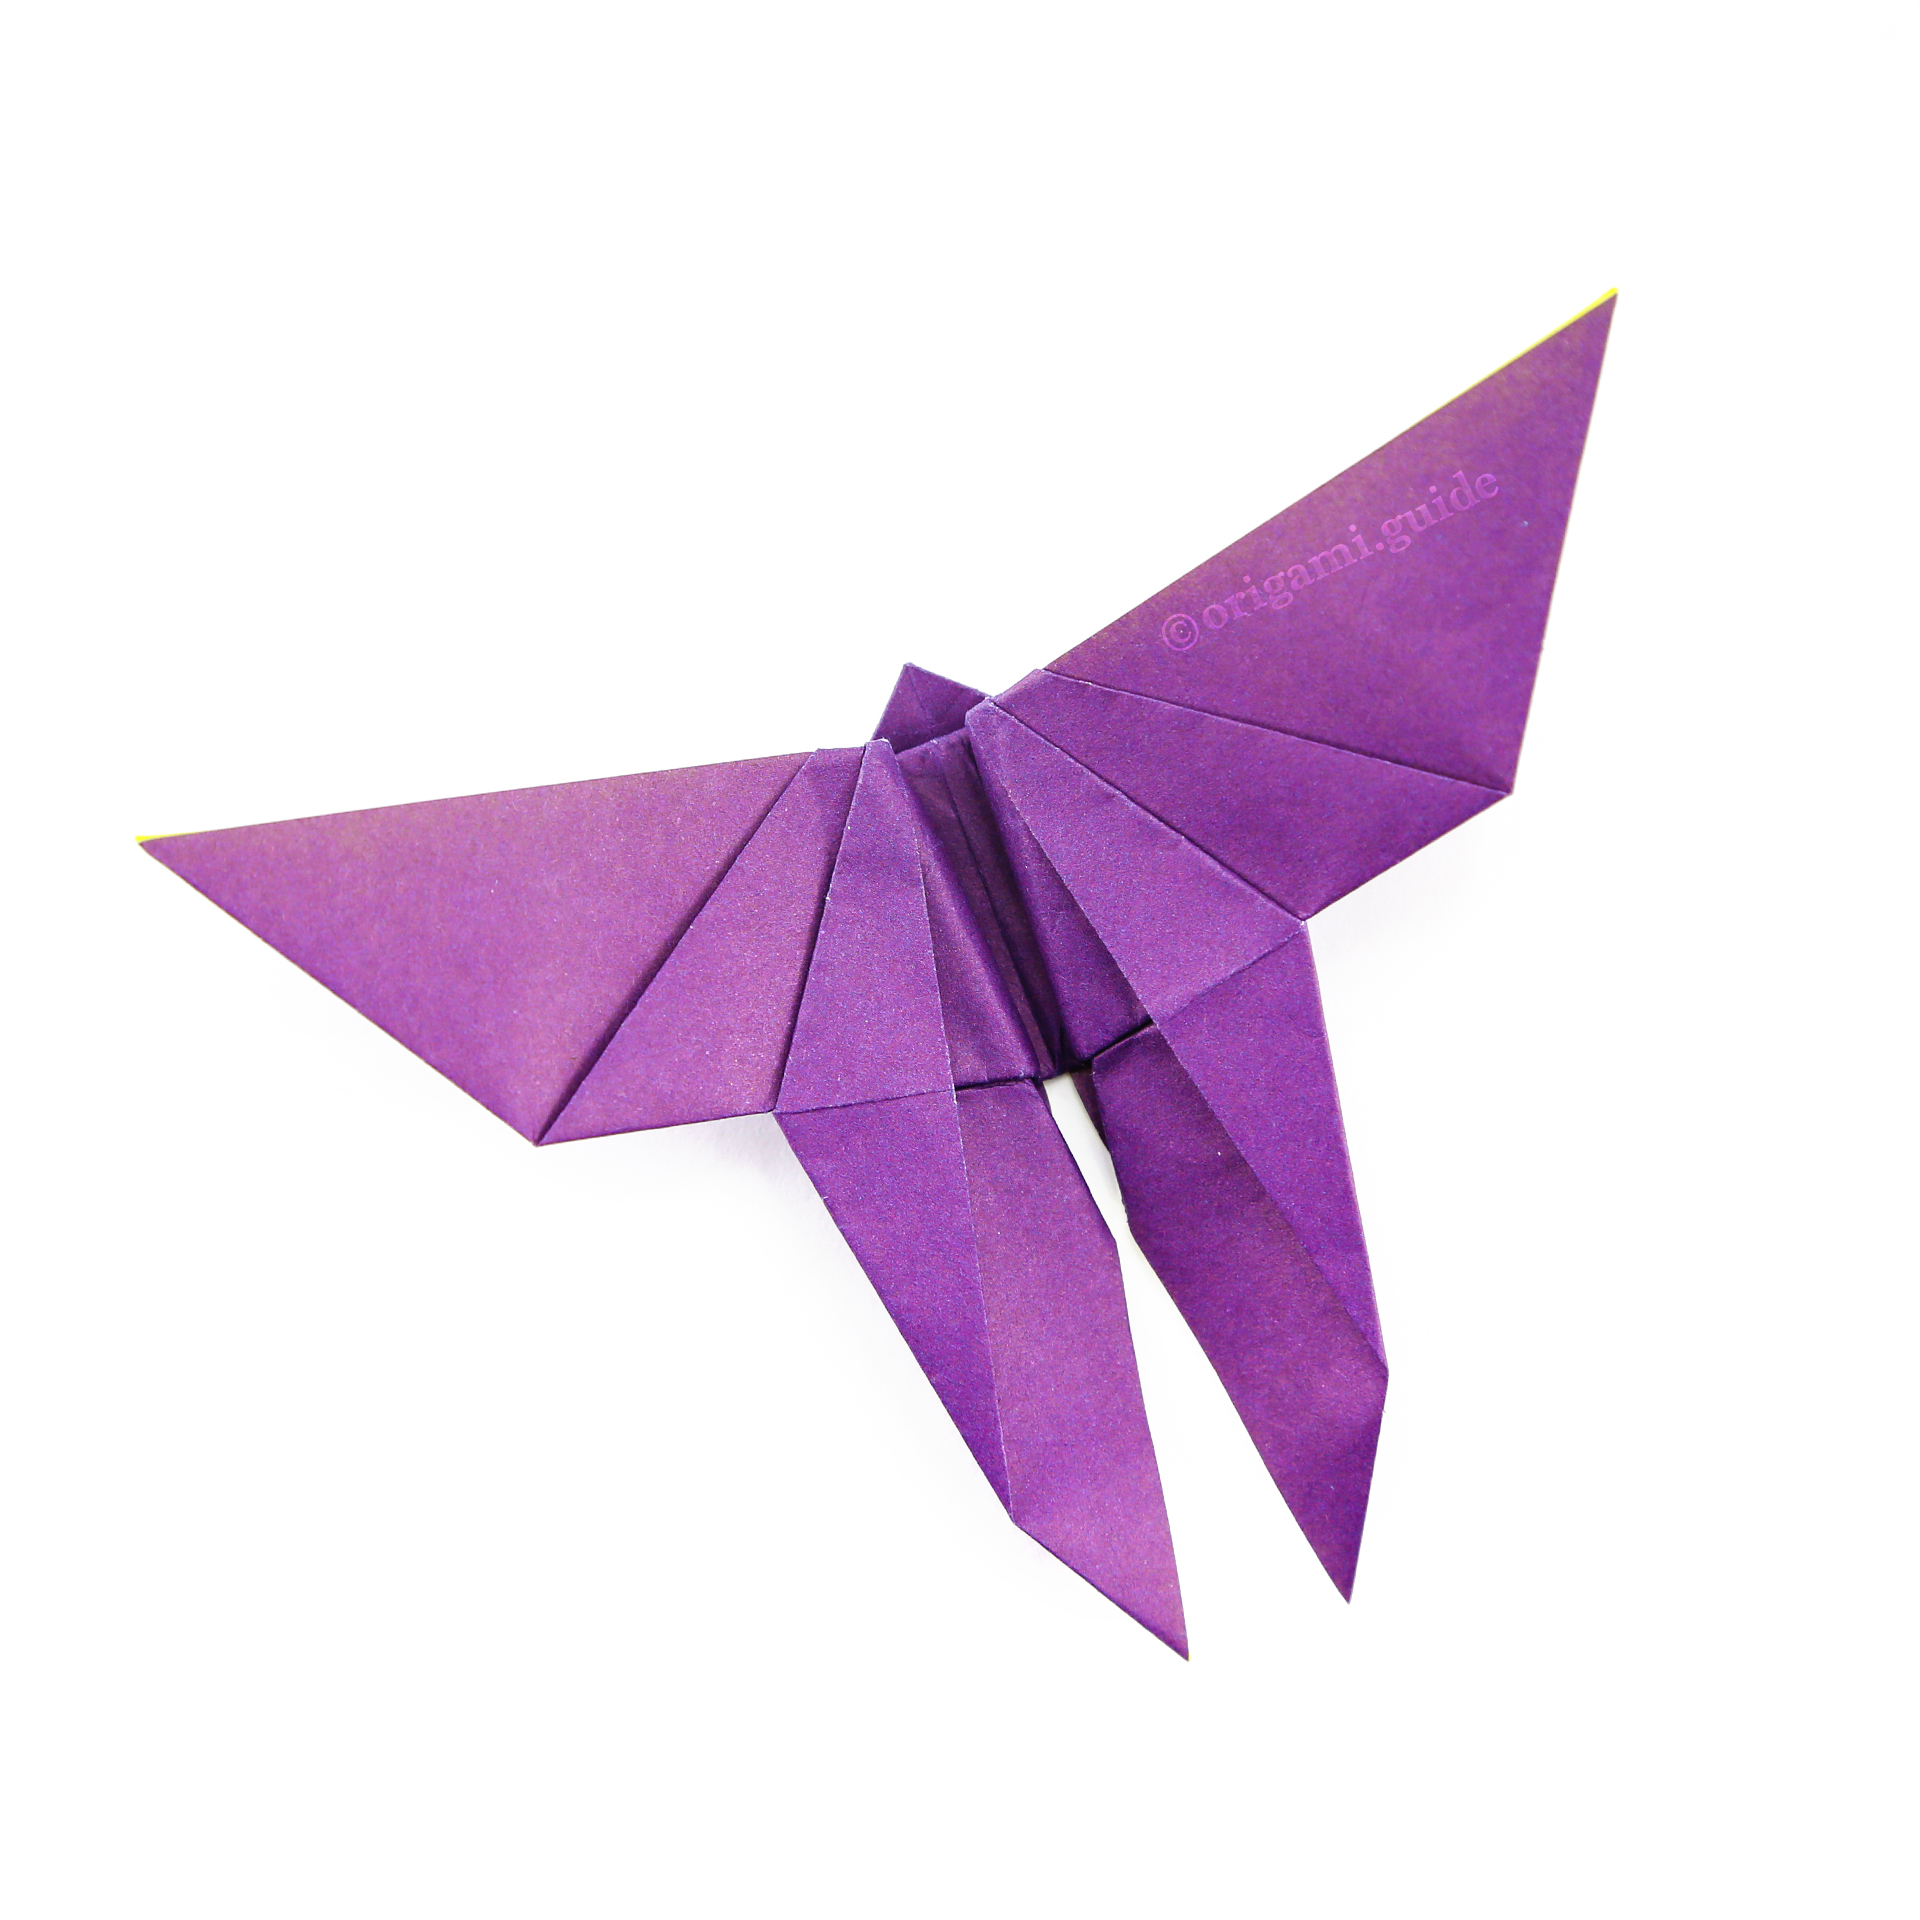 Origami Butterfly | Origami butterfly instructions, Origami ... | 1920x1920